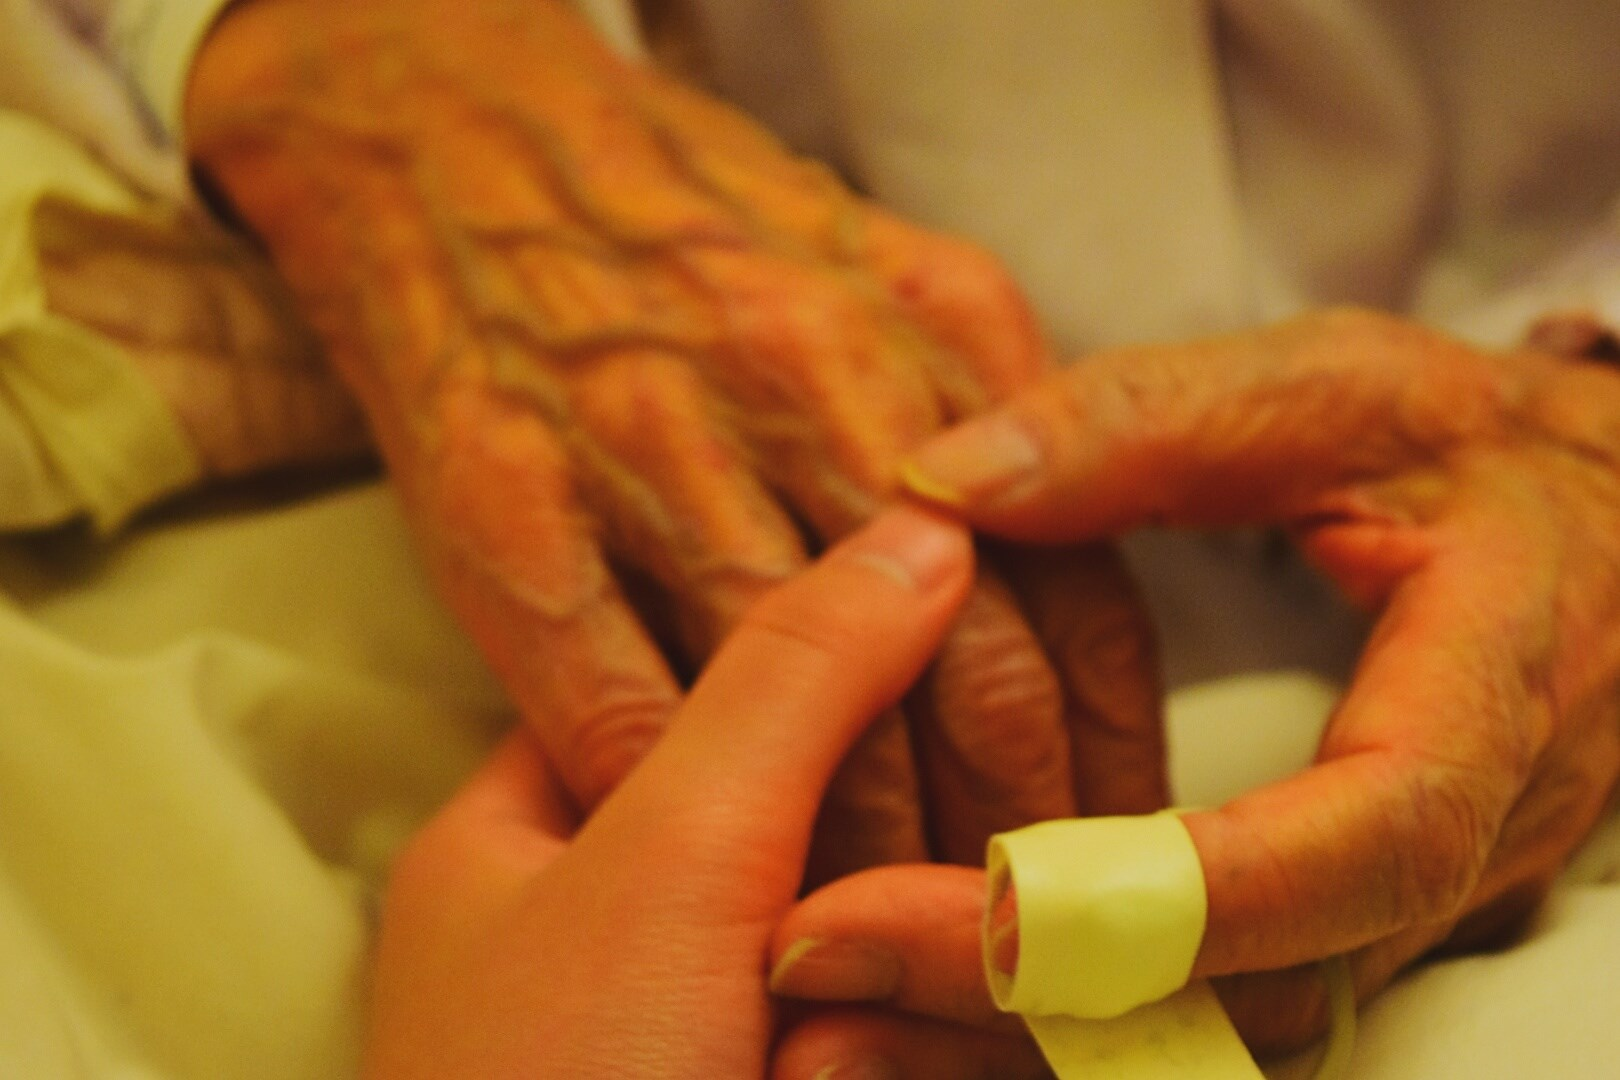 COPD End-of-Life Management Strategies: Use Could Be Expanded